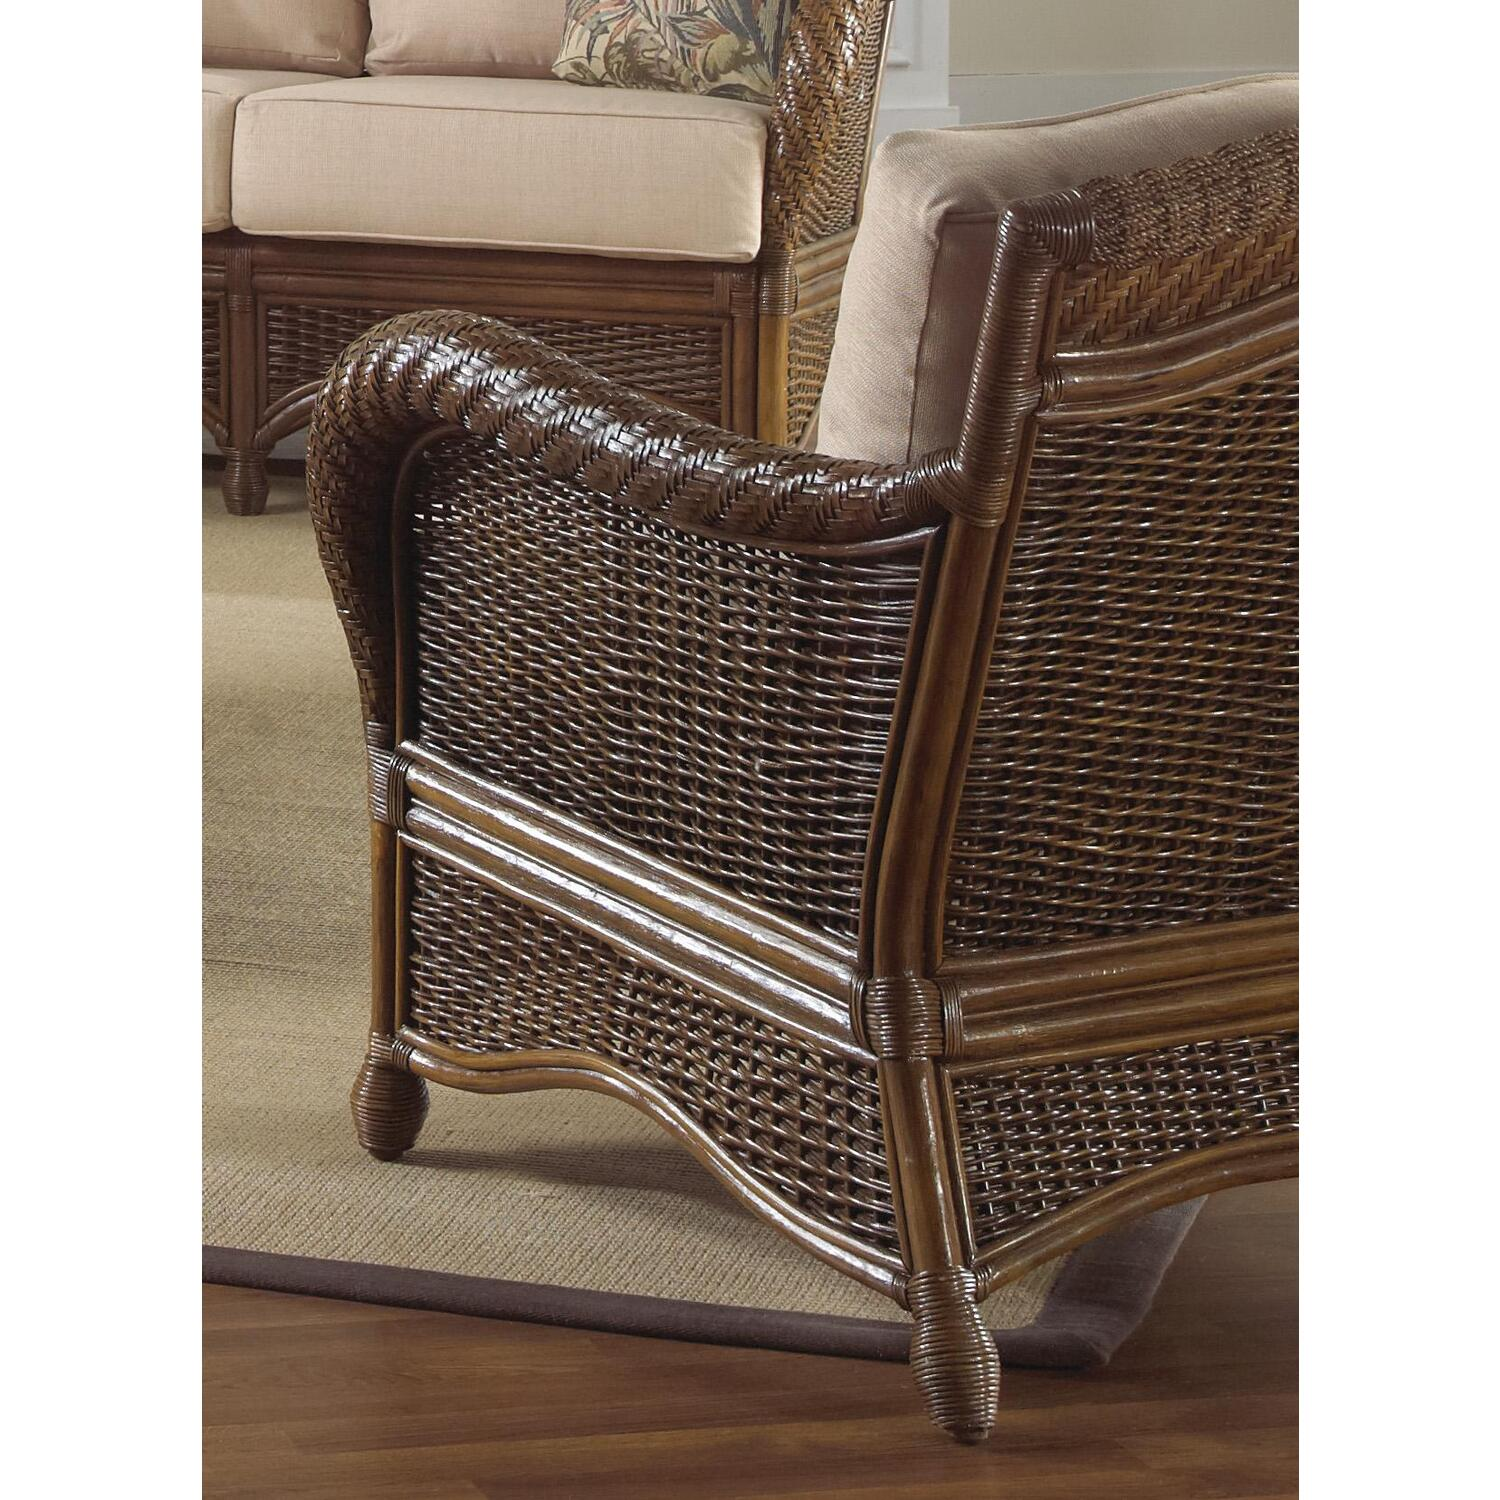 Hospitality Rattan Rattan & Wicker Lounge Chair With